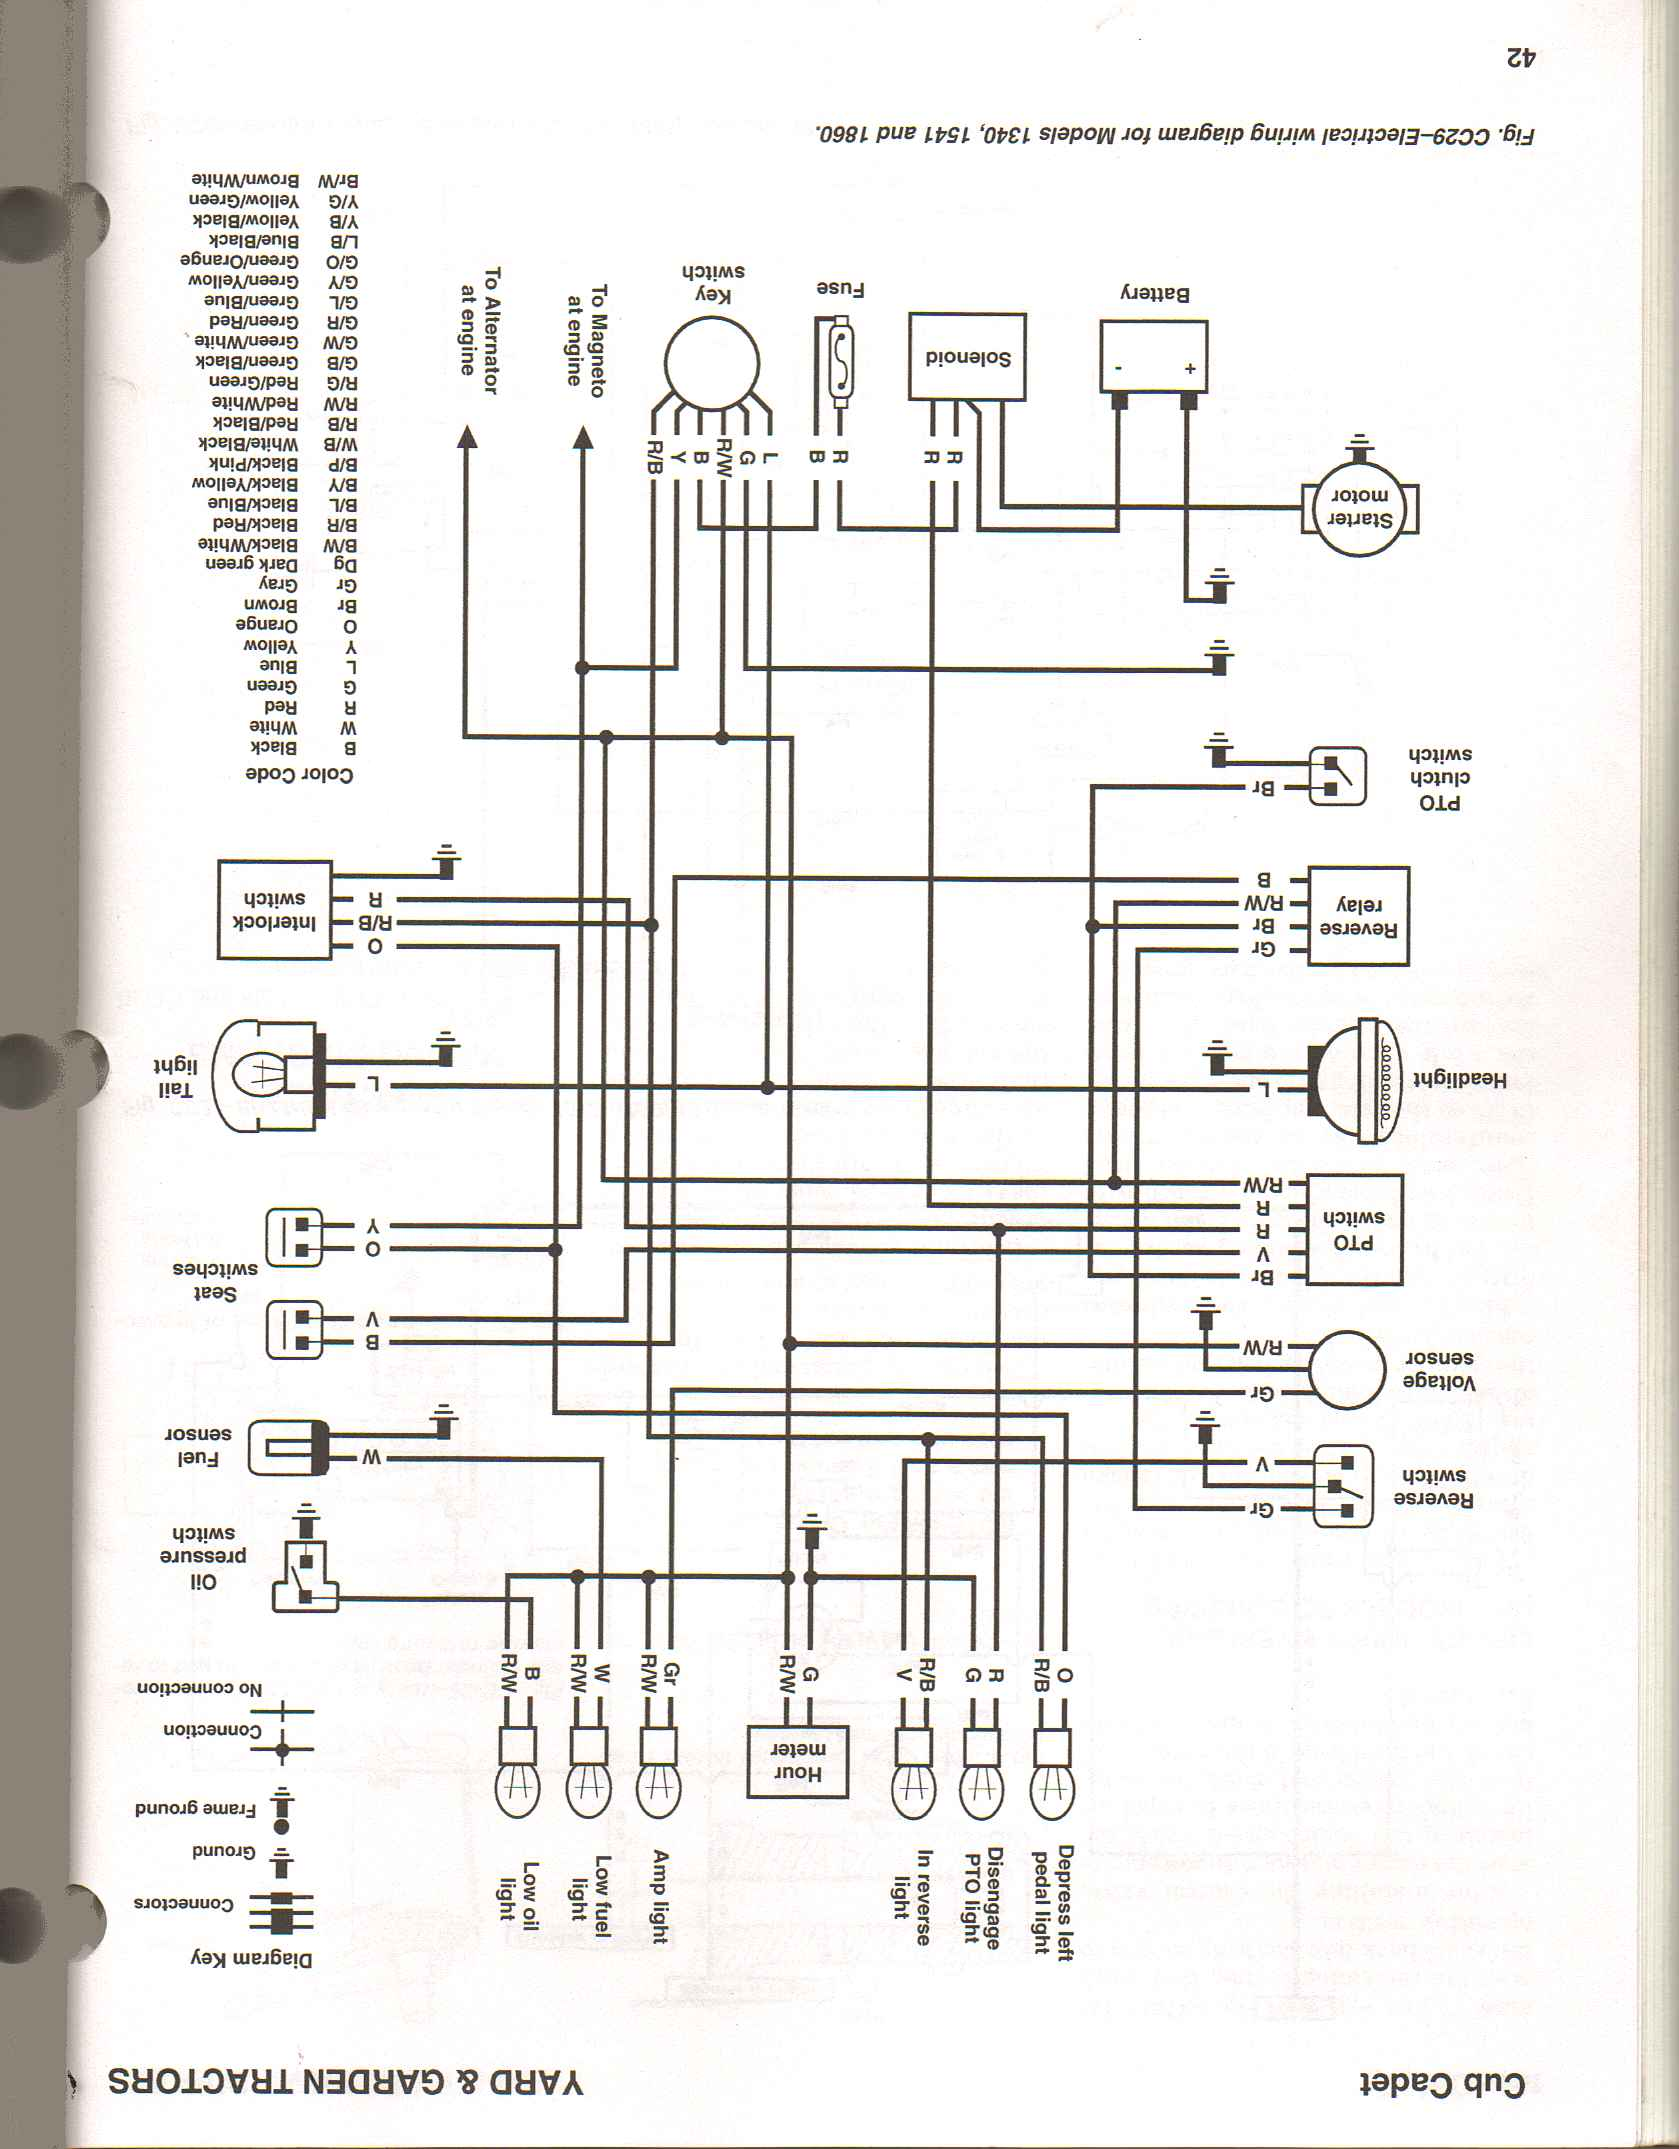 cub cadet wiring diagram for ltx 1050 ltx 1050 wiring diagram wiring diagram data  ltx 1050 wiring diagram wiring